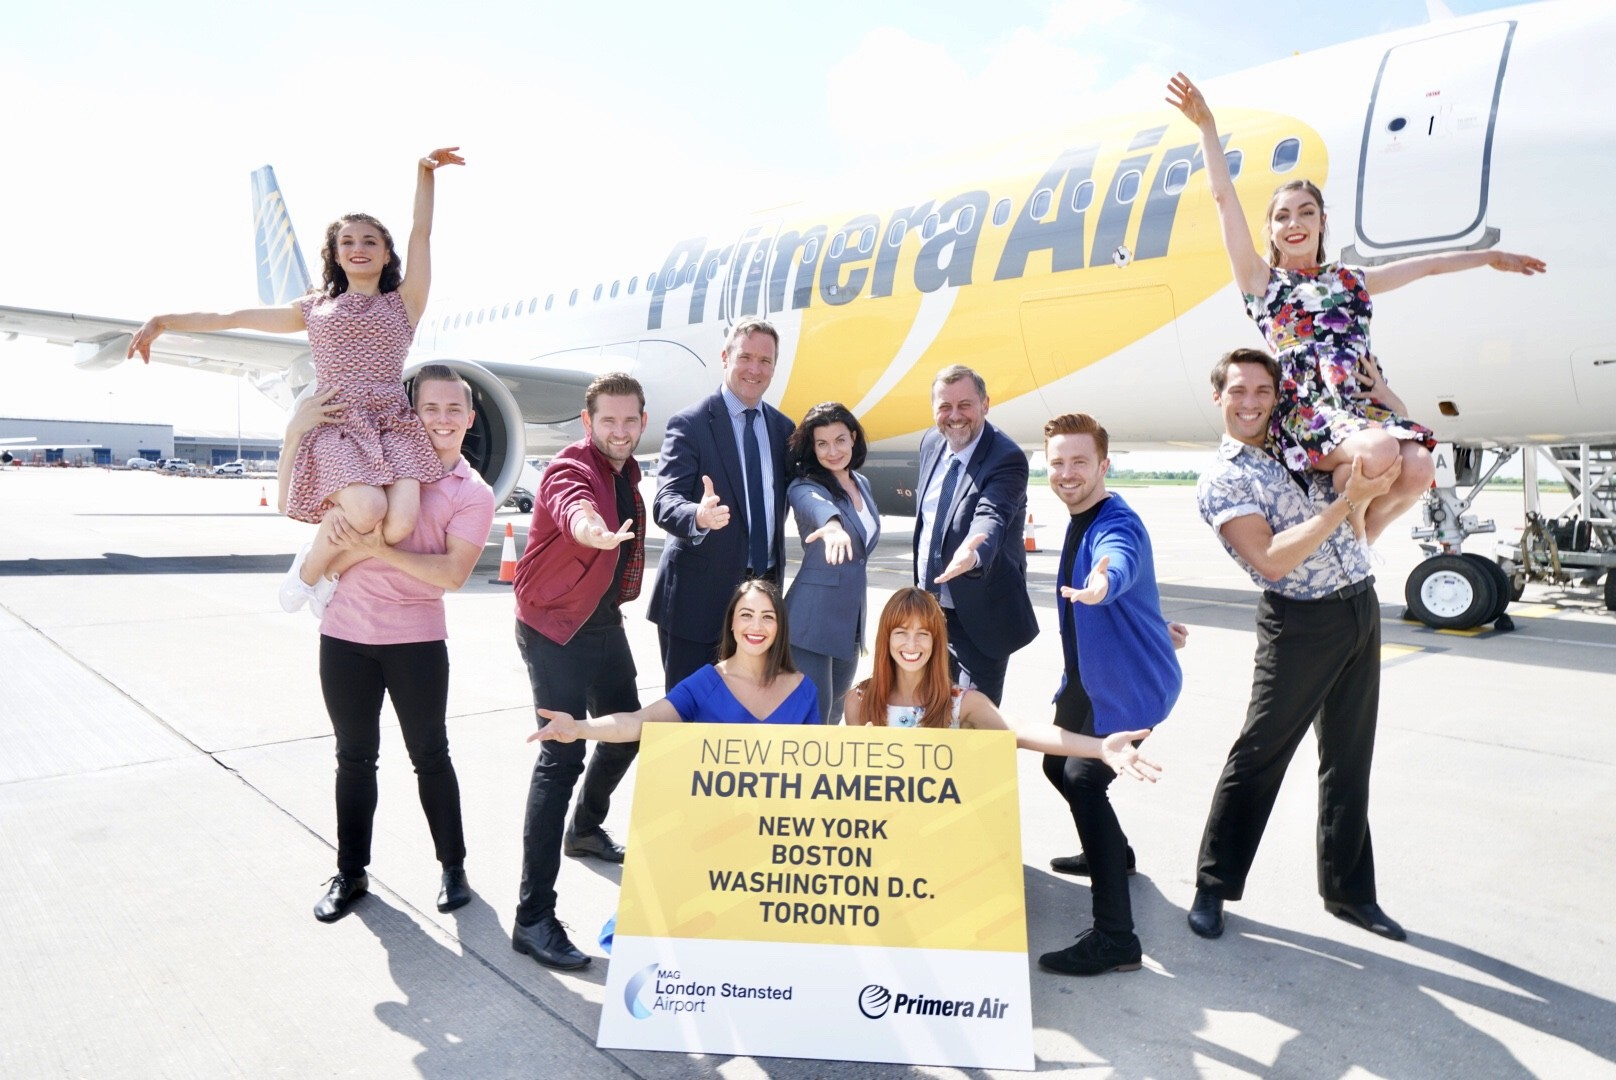 New Airlines And Route Launches Help Drive Record Passenger Numbers